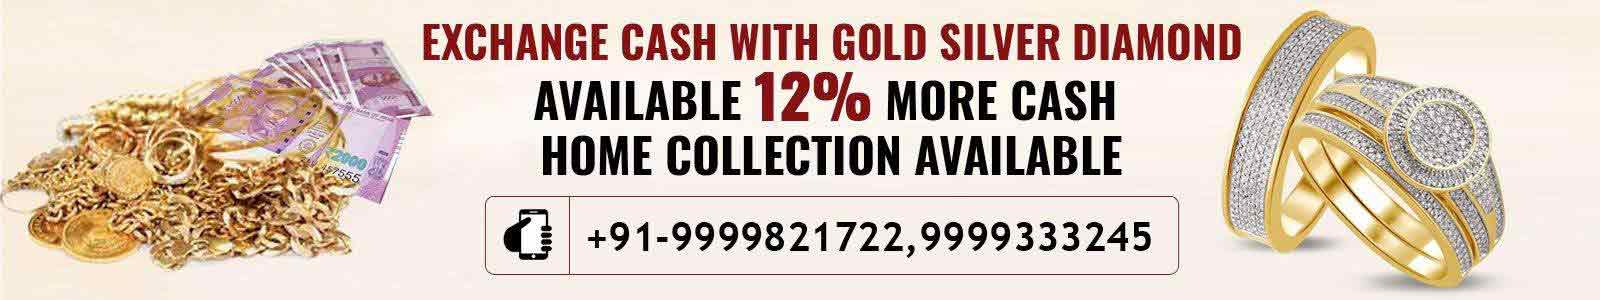 Cah-for-Gold-Noida